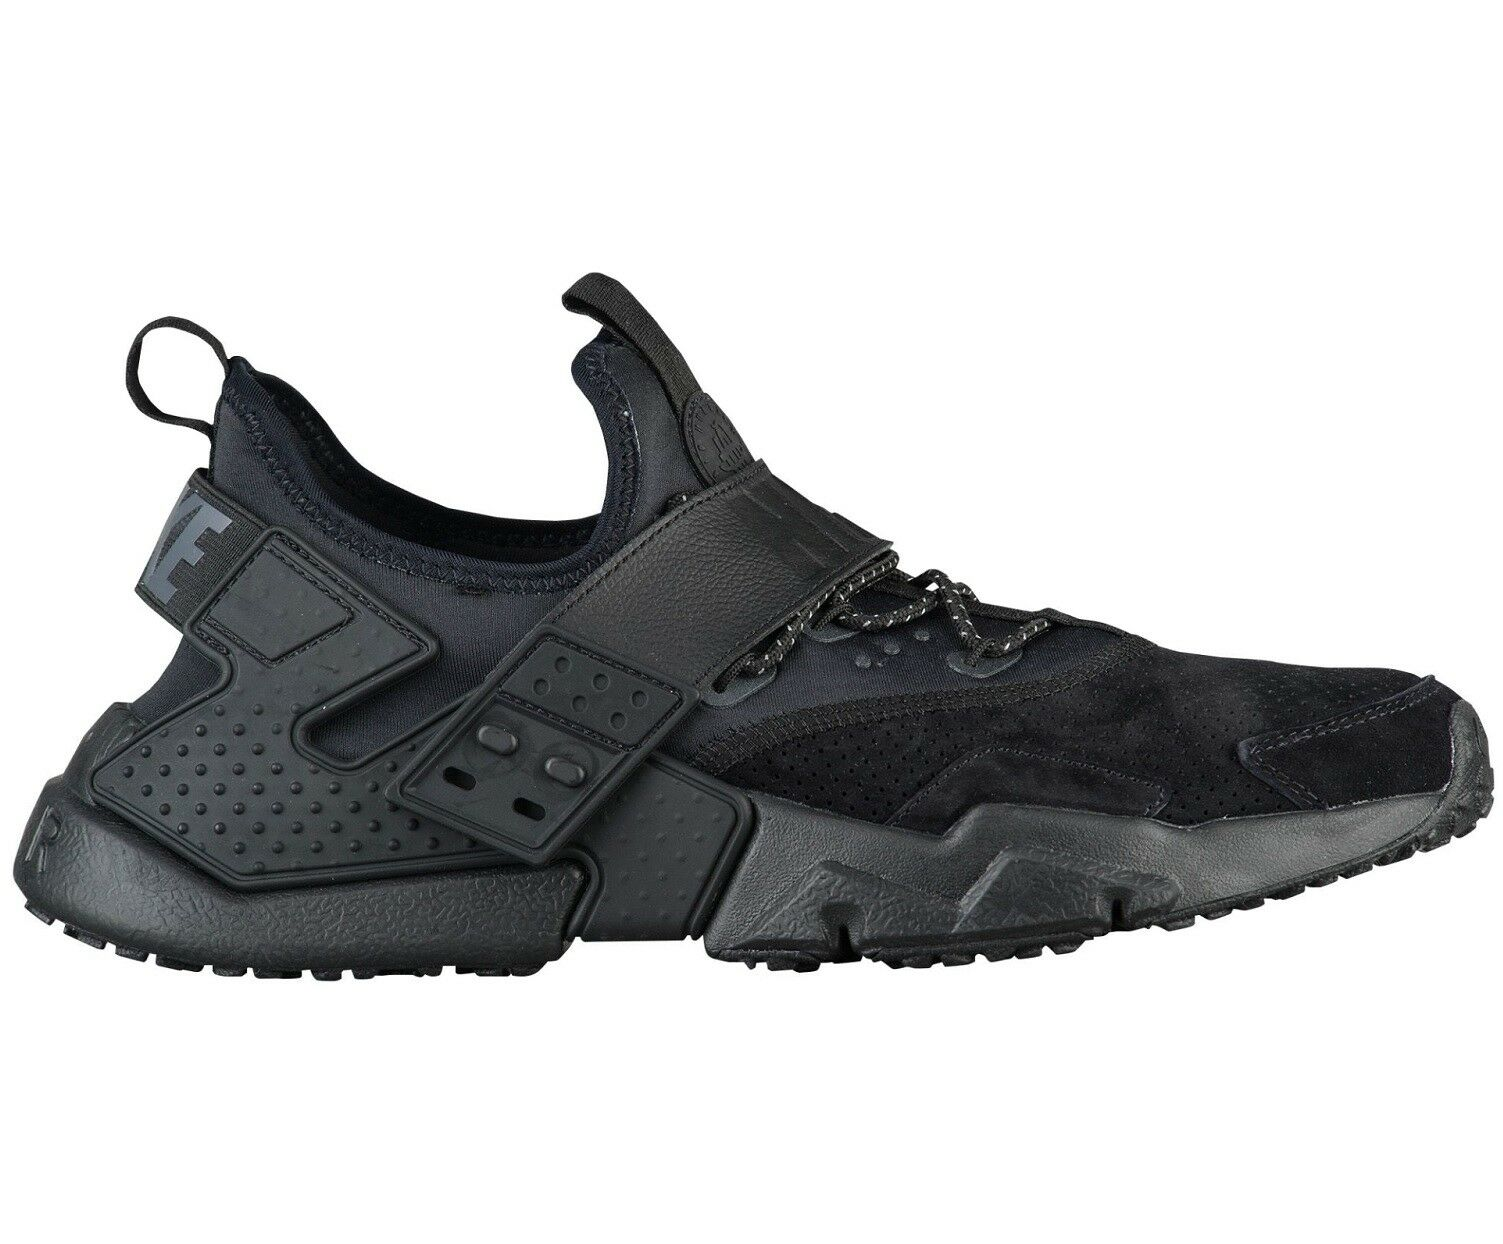 Nike Air Huarache Black Drift Premium Mens AH7335-001 Black Huarache Running Shoes Size 9.5 b60e6d